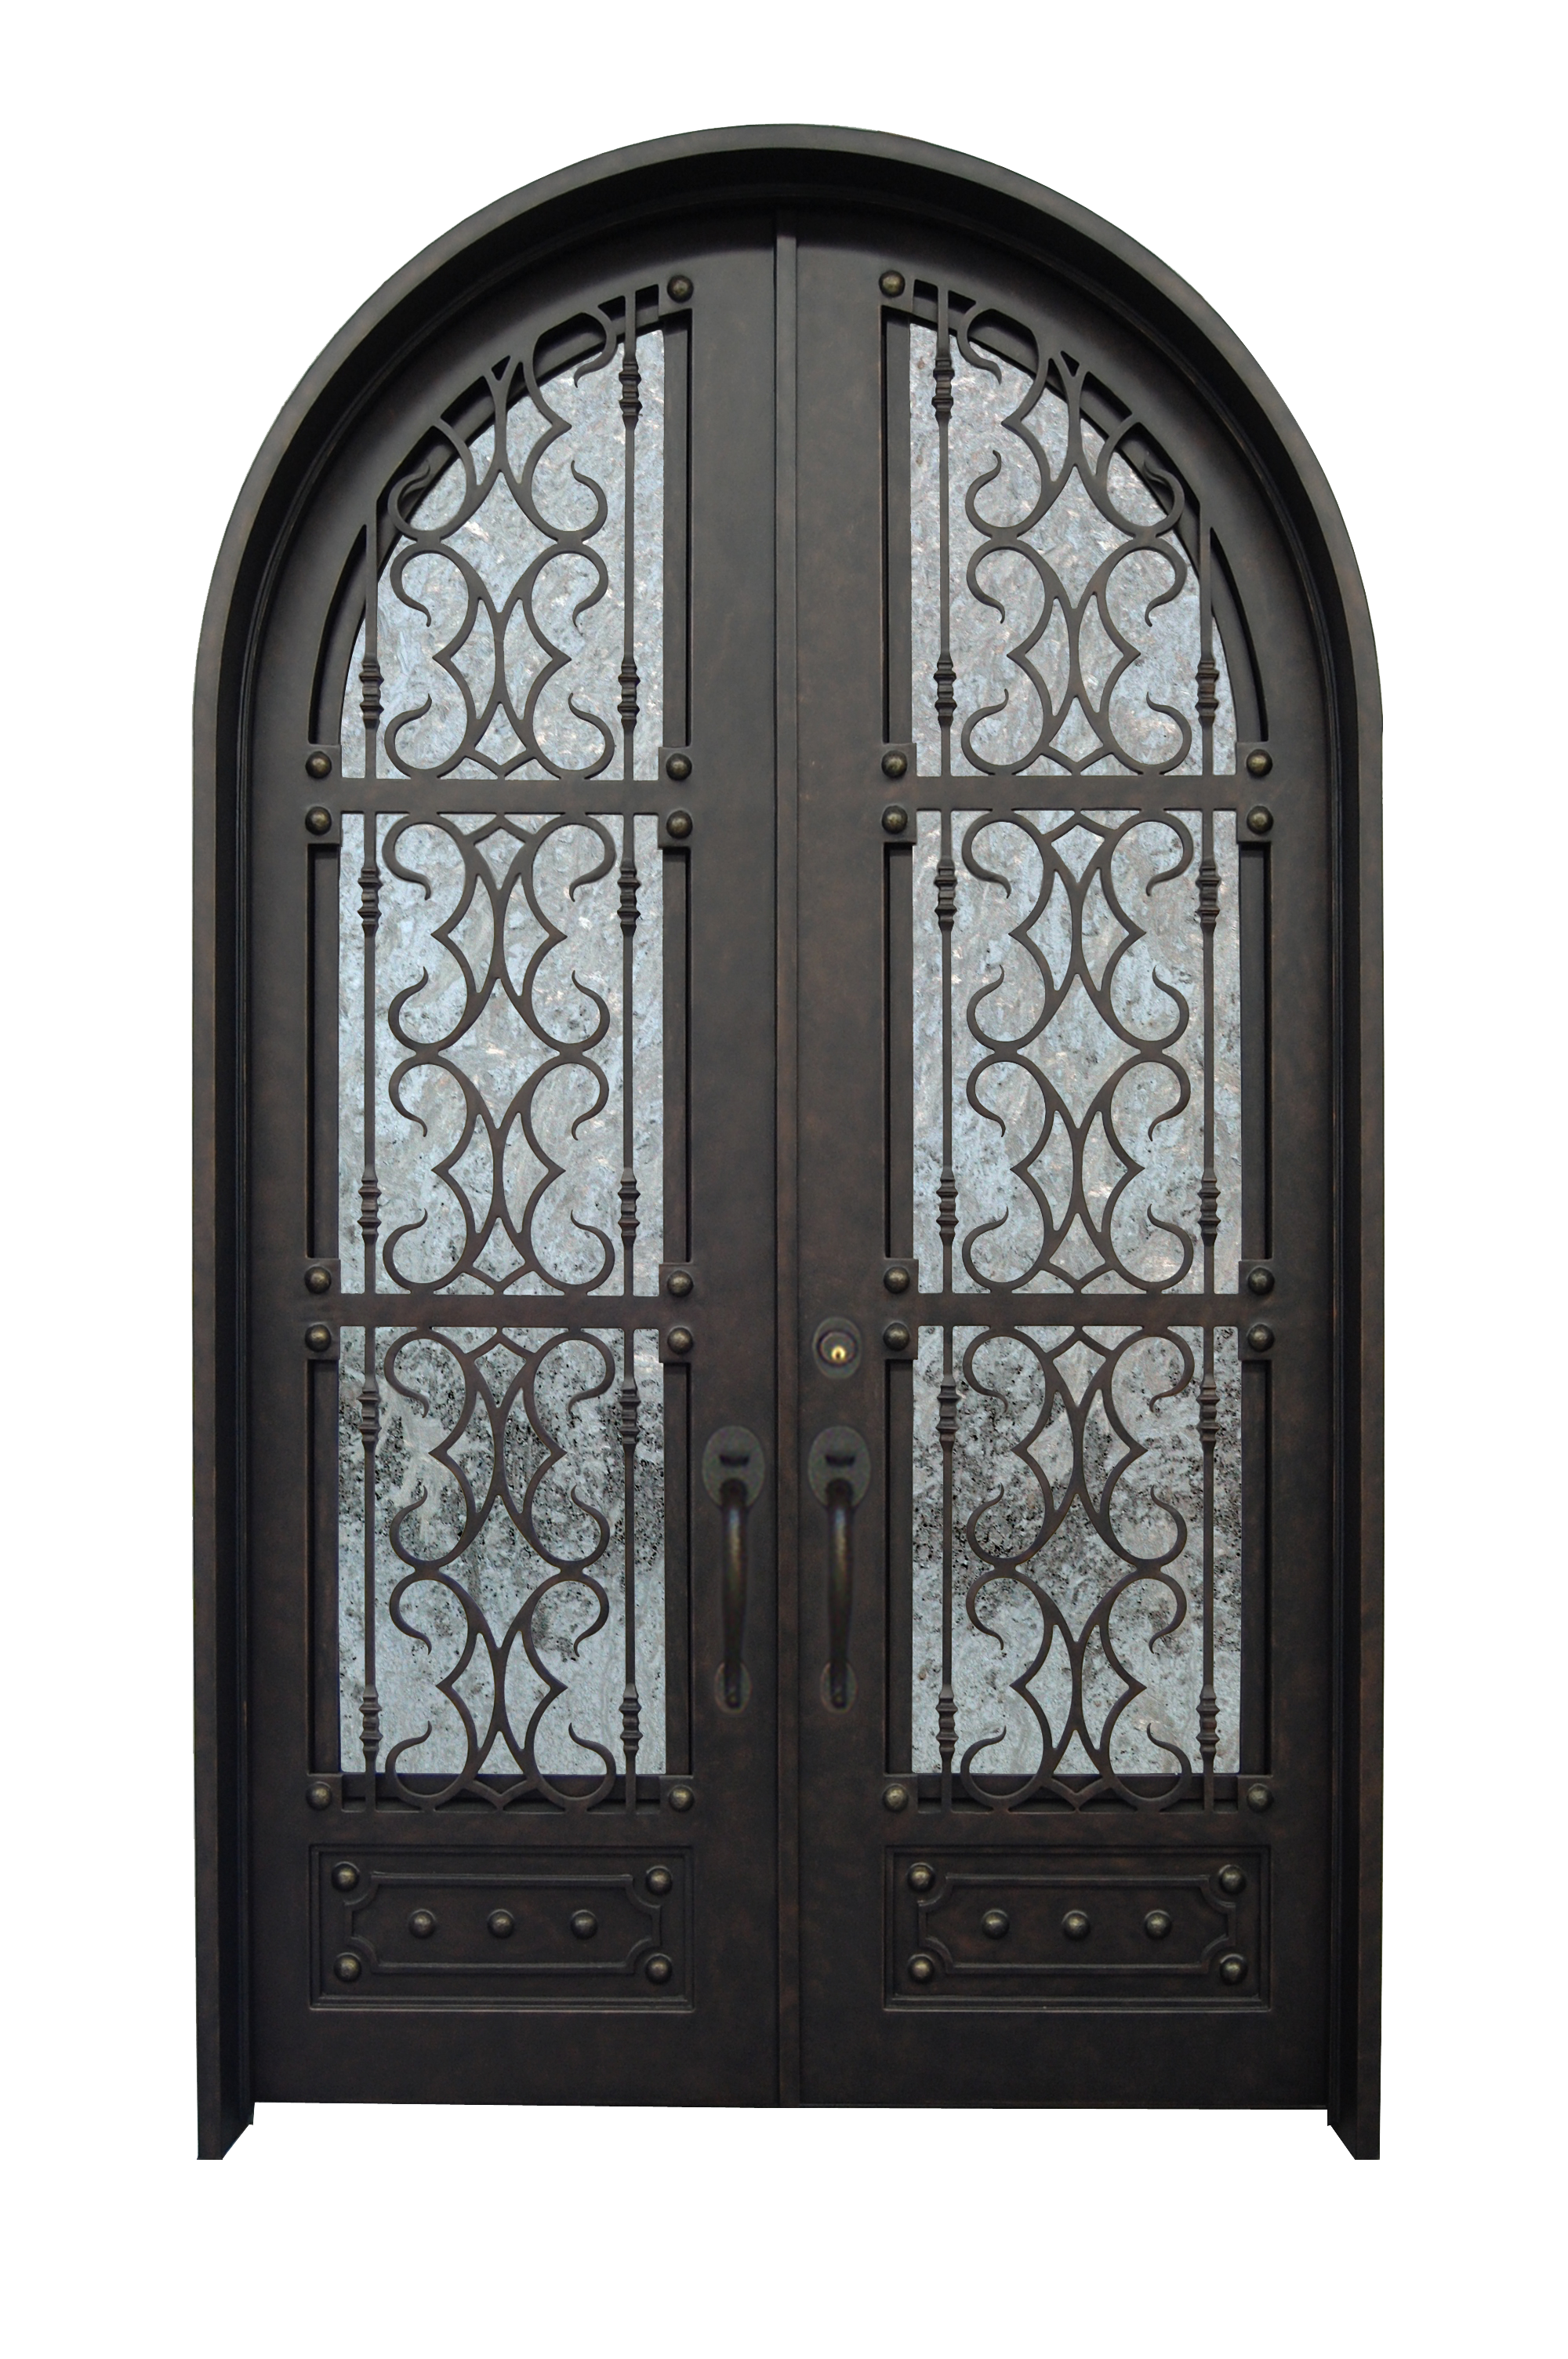 Double Arch Doors  sc 1 st  Supreme Iron Doors & Double Arch Doors u2013 Supreme Iron Doors